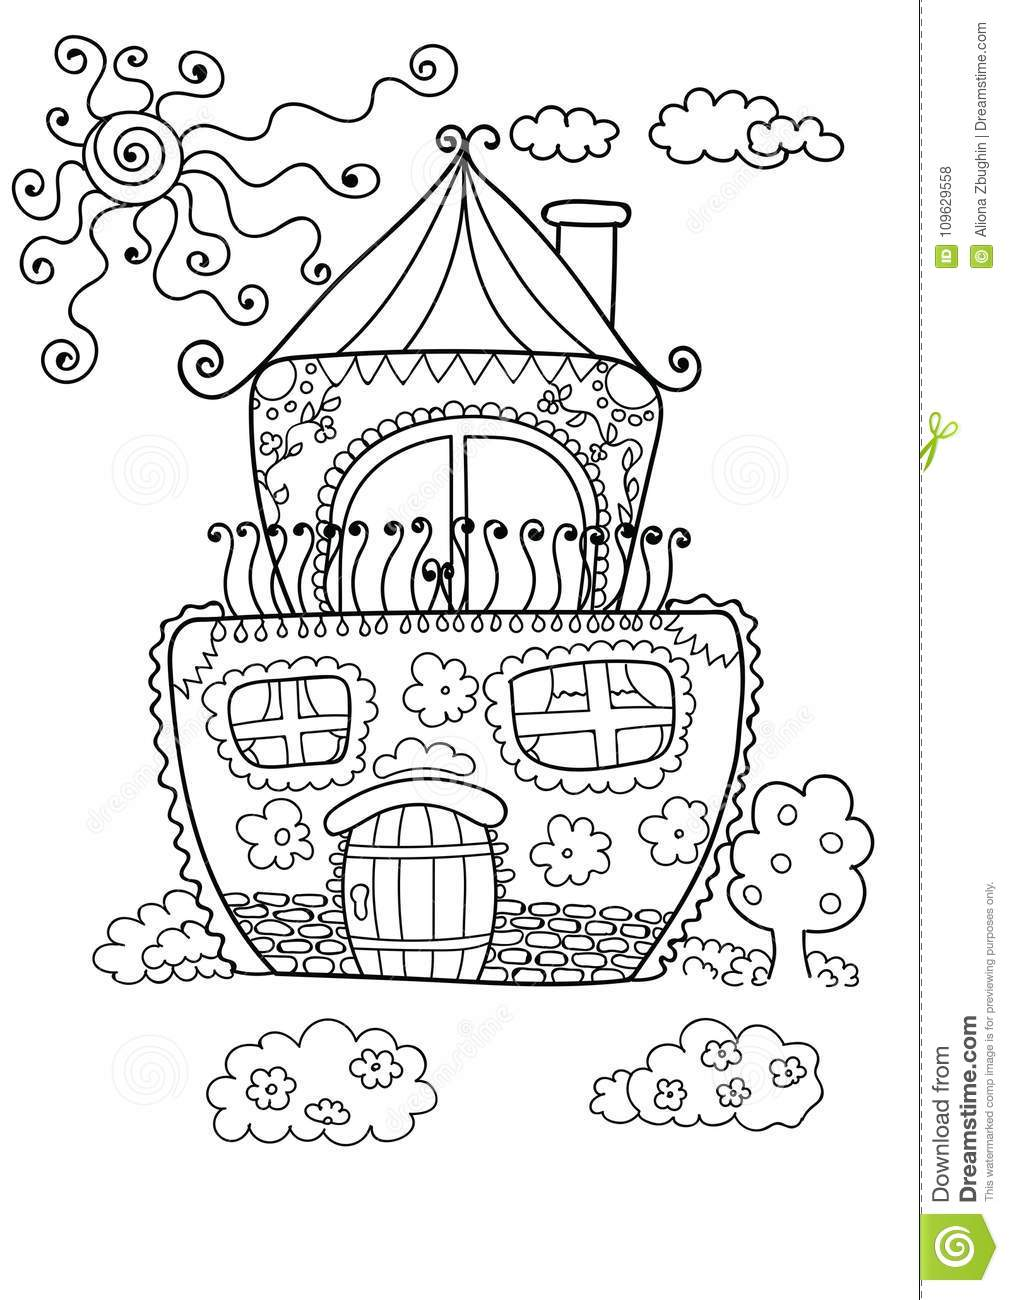 Cartoon House Coloring Pages Cartoon House Outline ClipArt Best ...